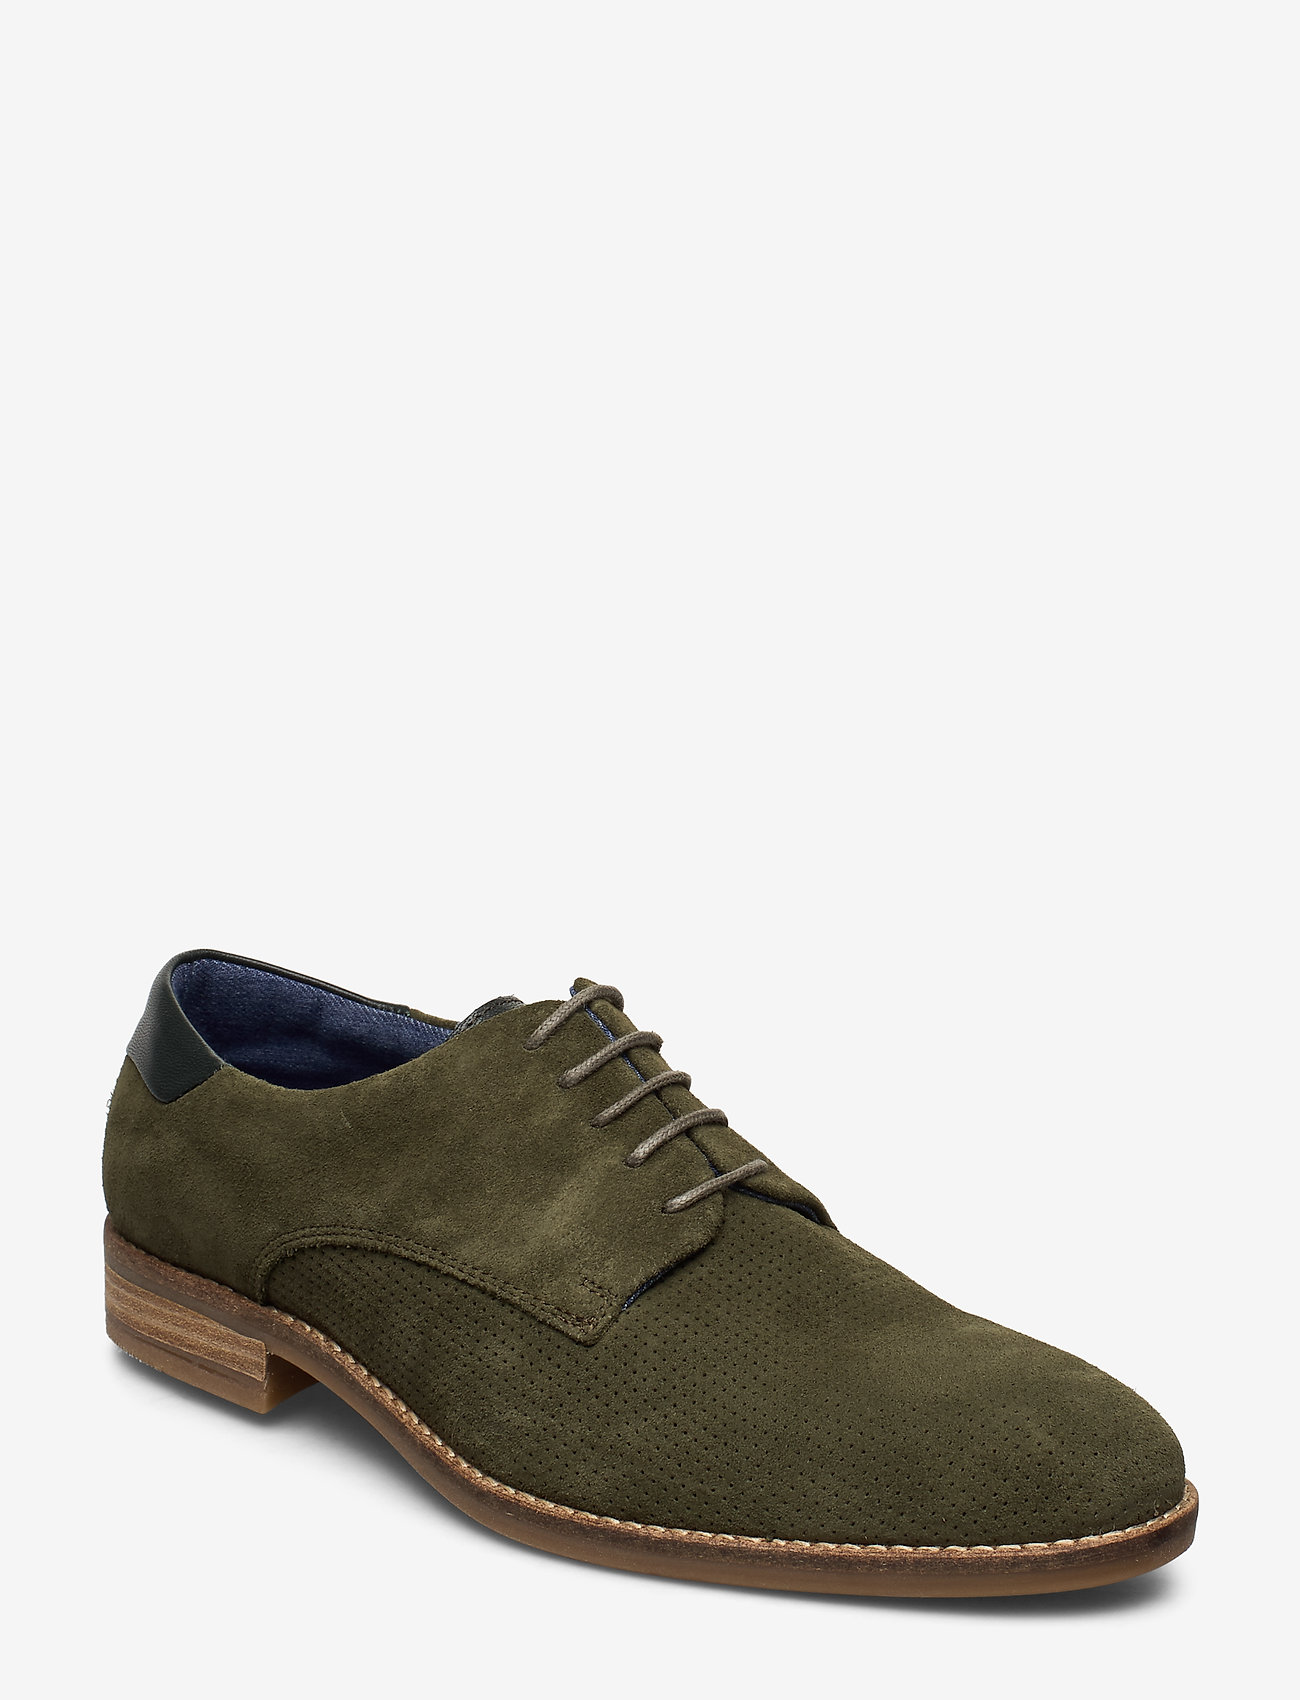 Playboy Footwear CARL - Business GREEN